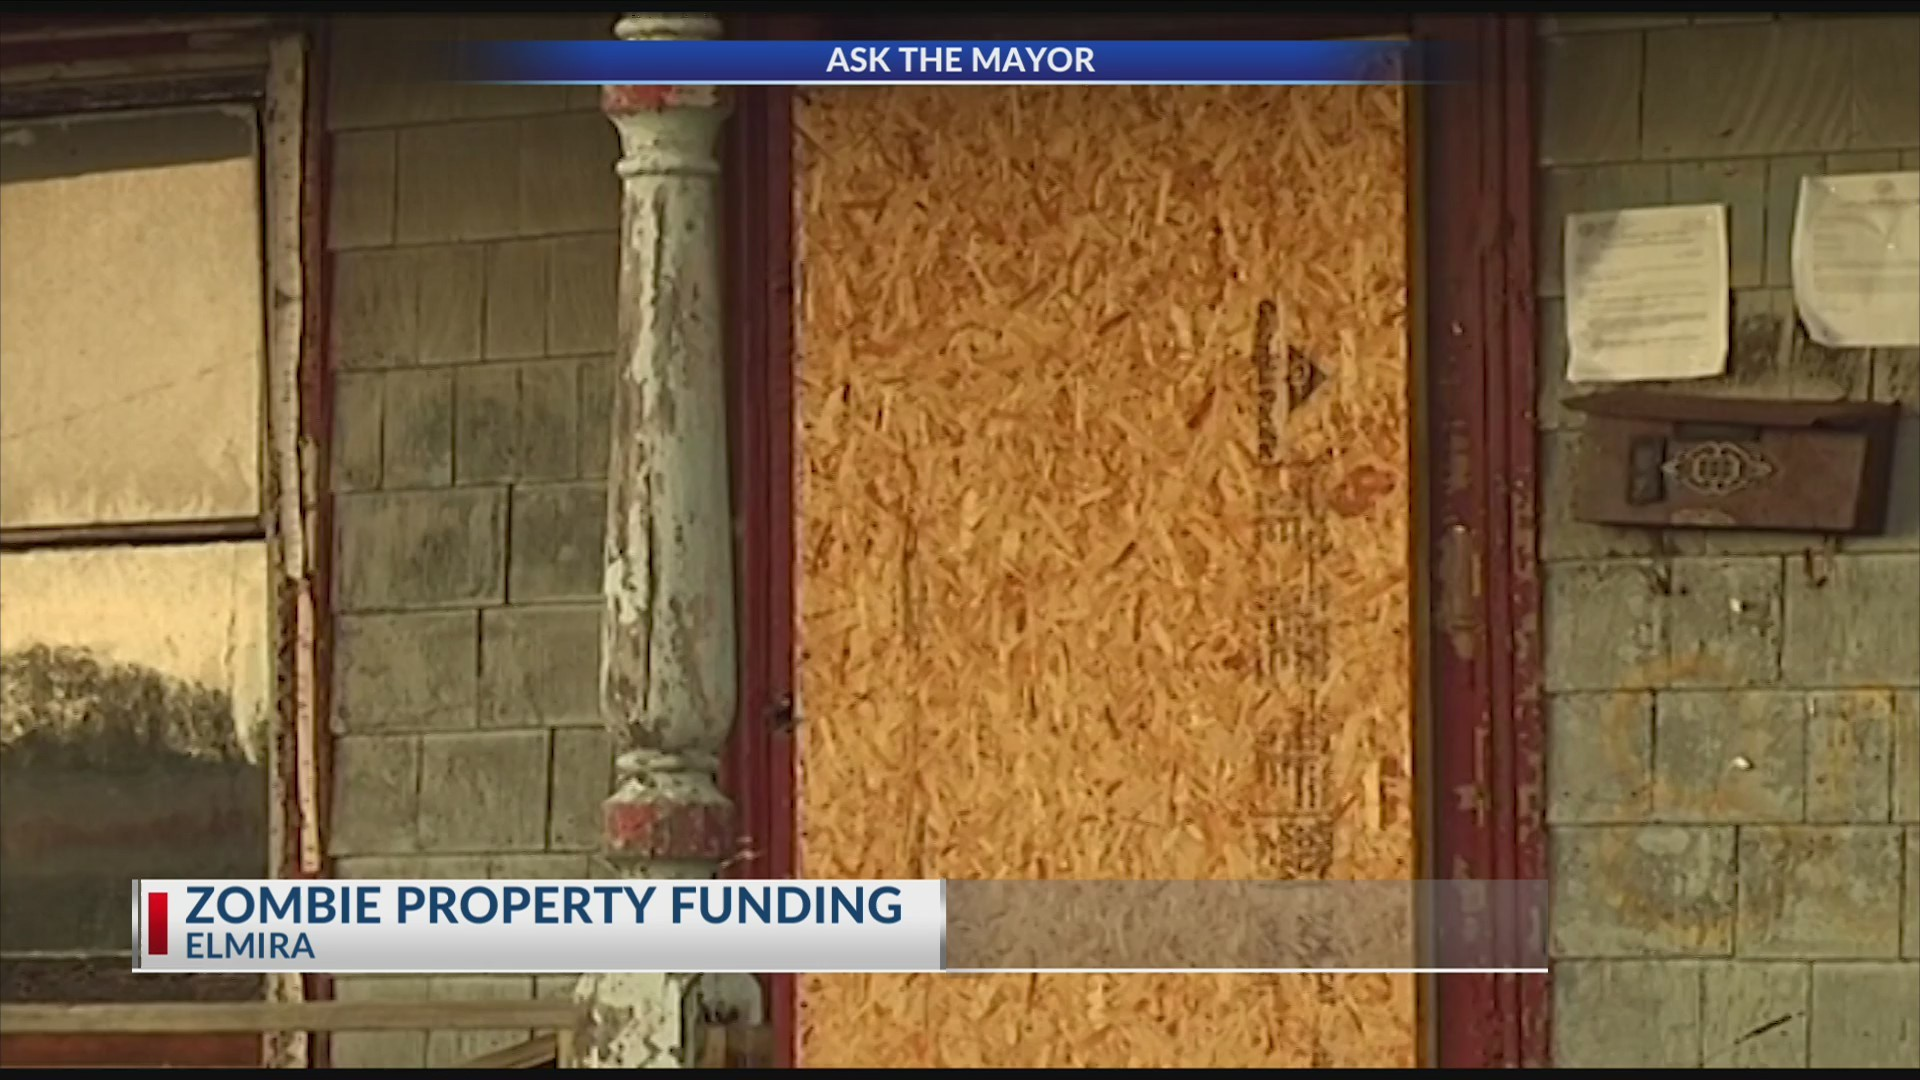 Ask_the_Mayor__Zombie_property_funding_a_0_20190208160327